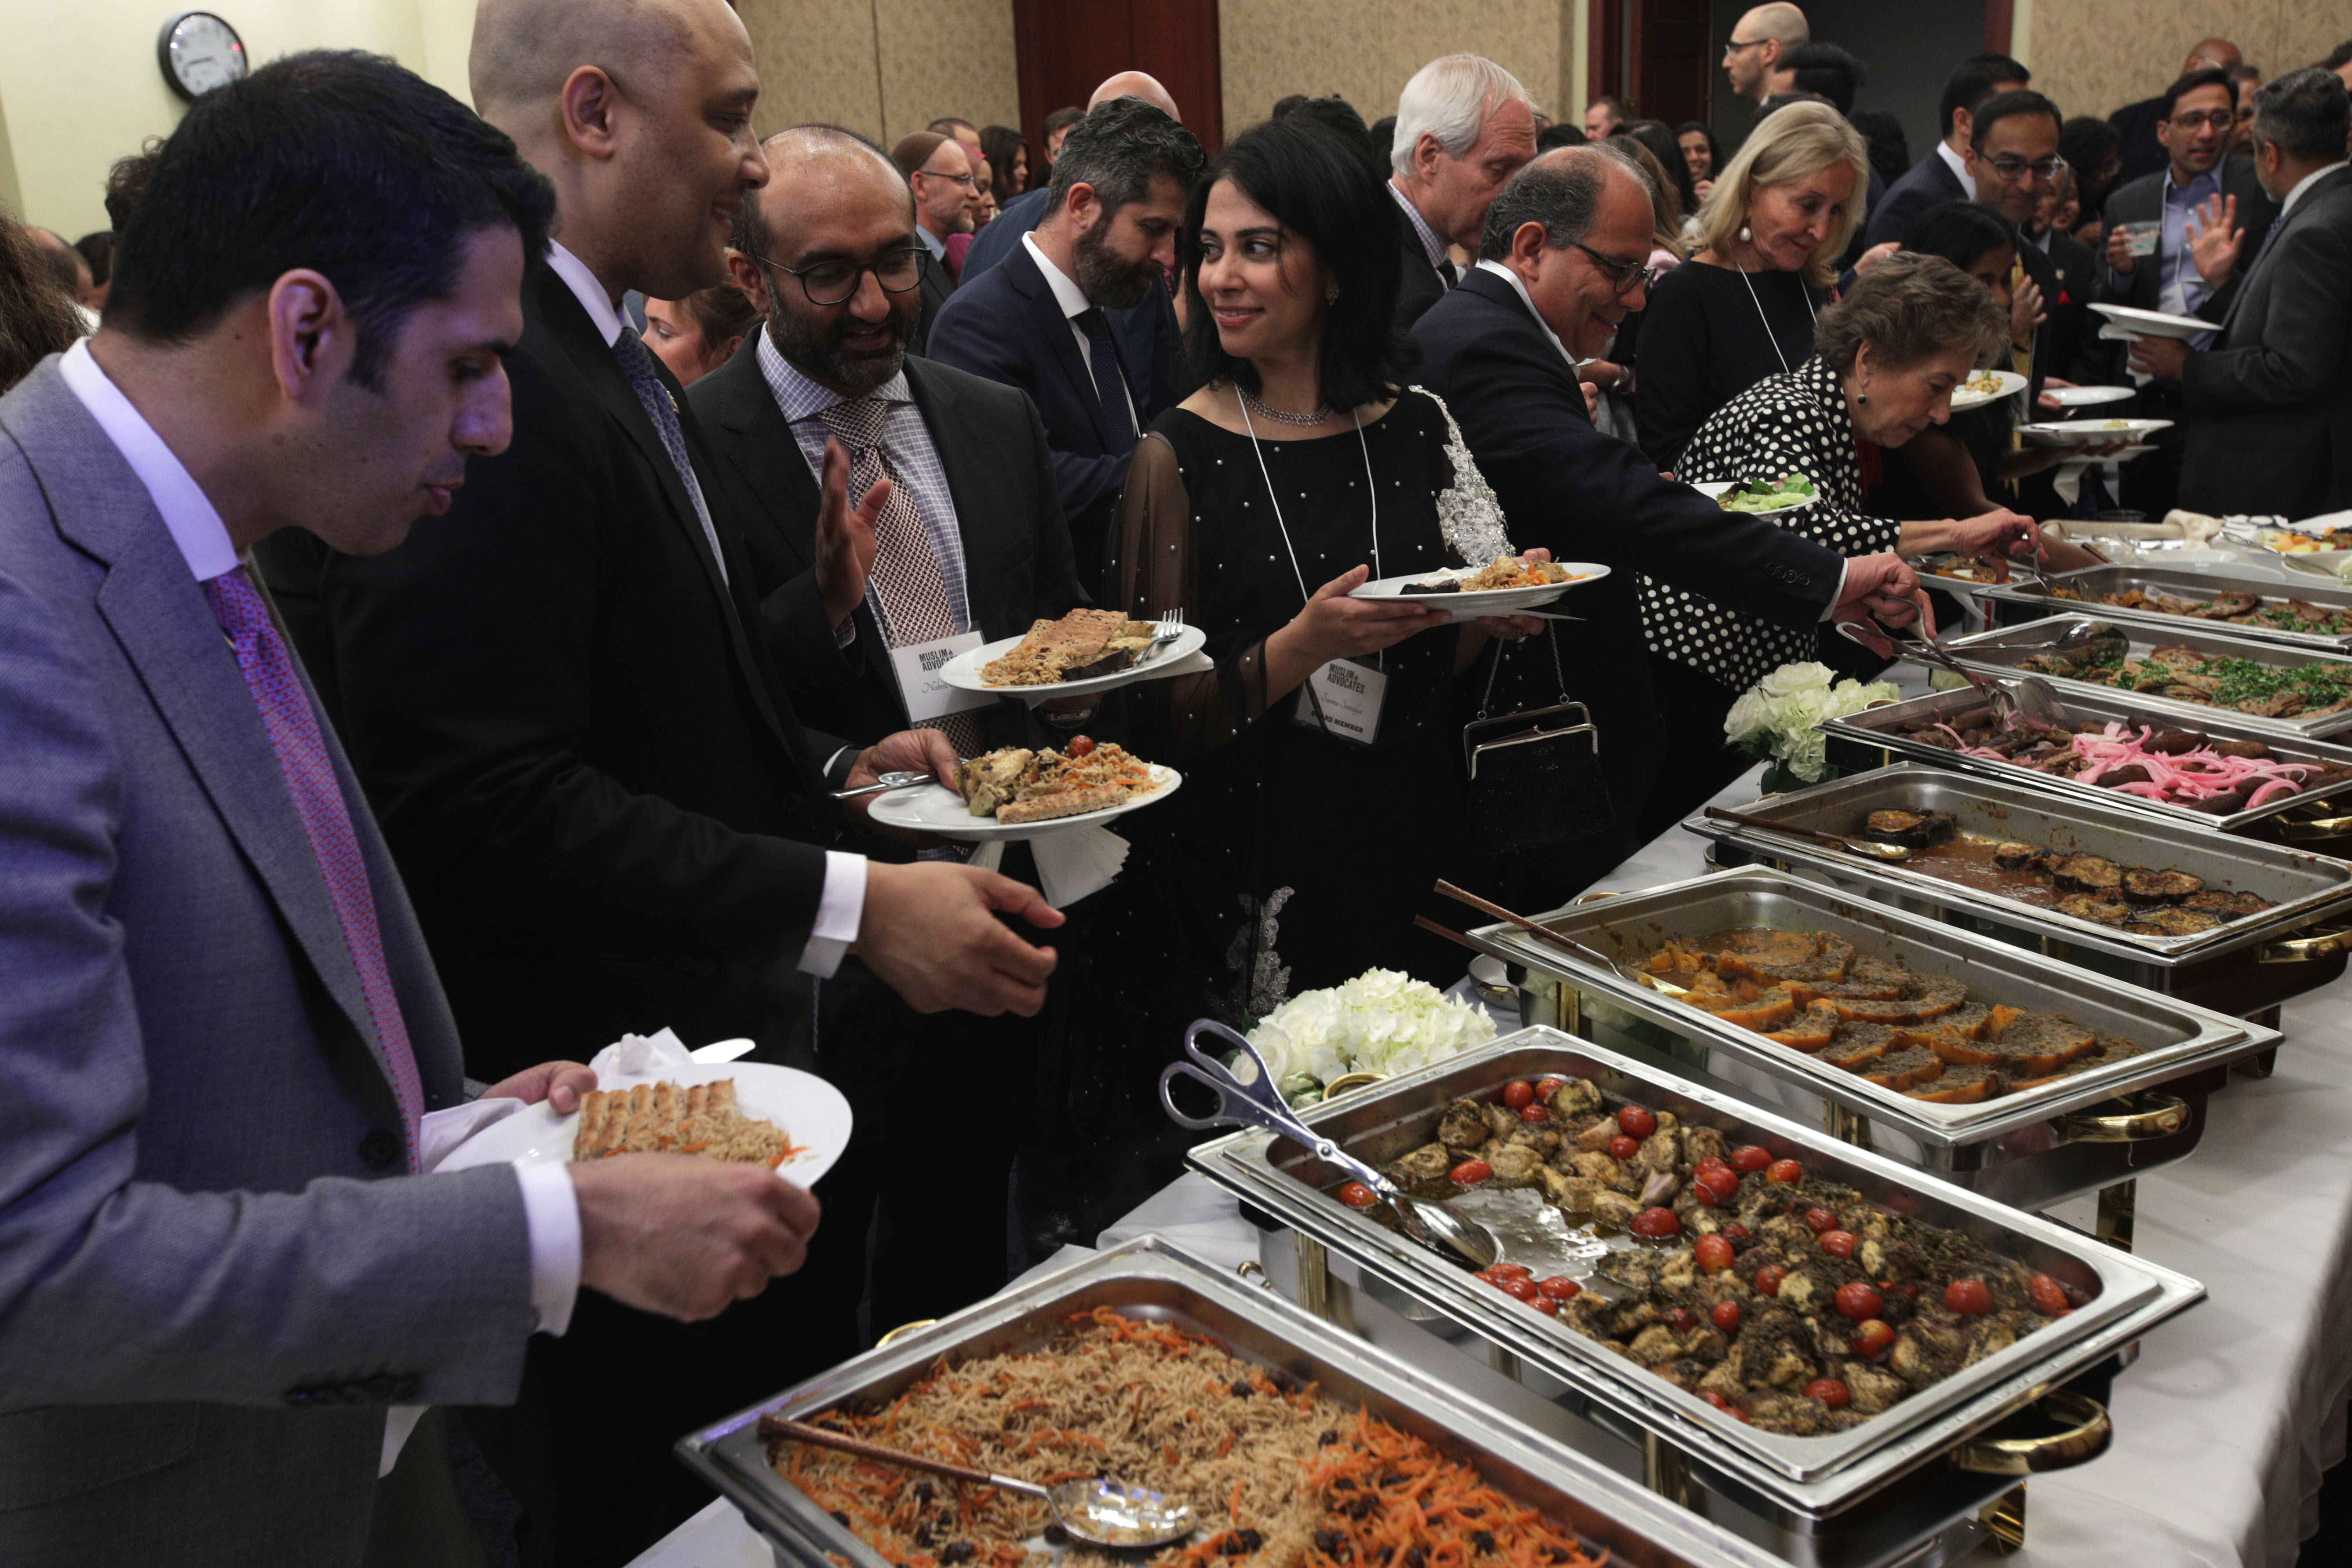 After an imam led a prayer to mark the end of the fast, guests flocked to the food at the congressional iftar.